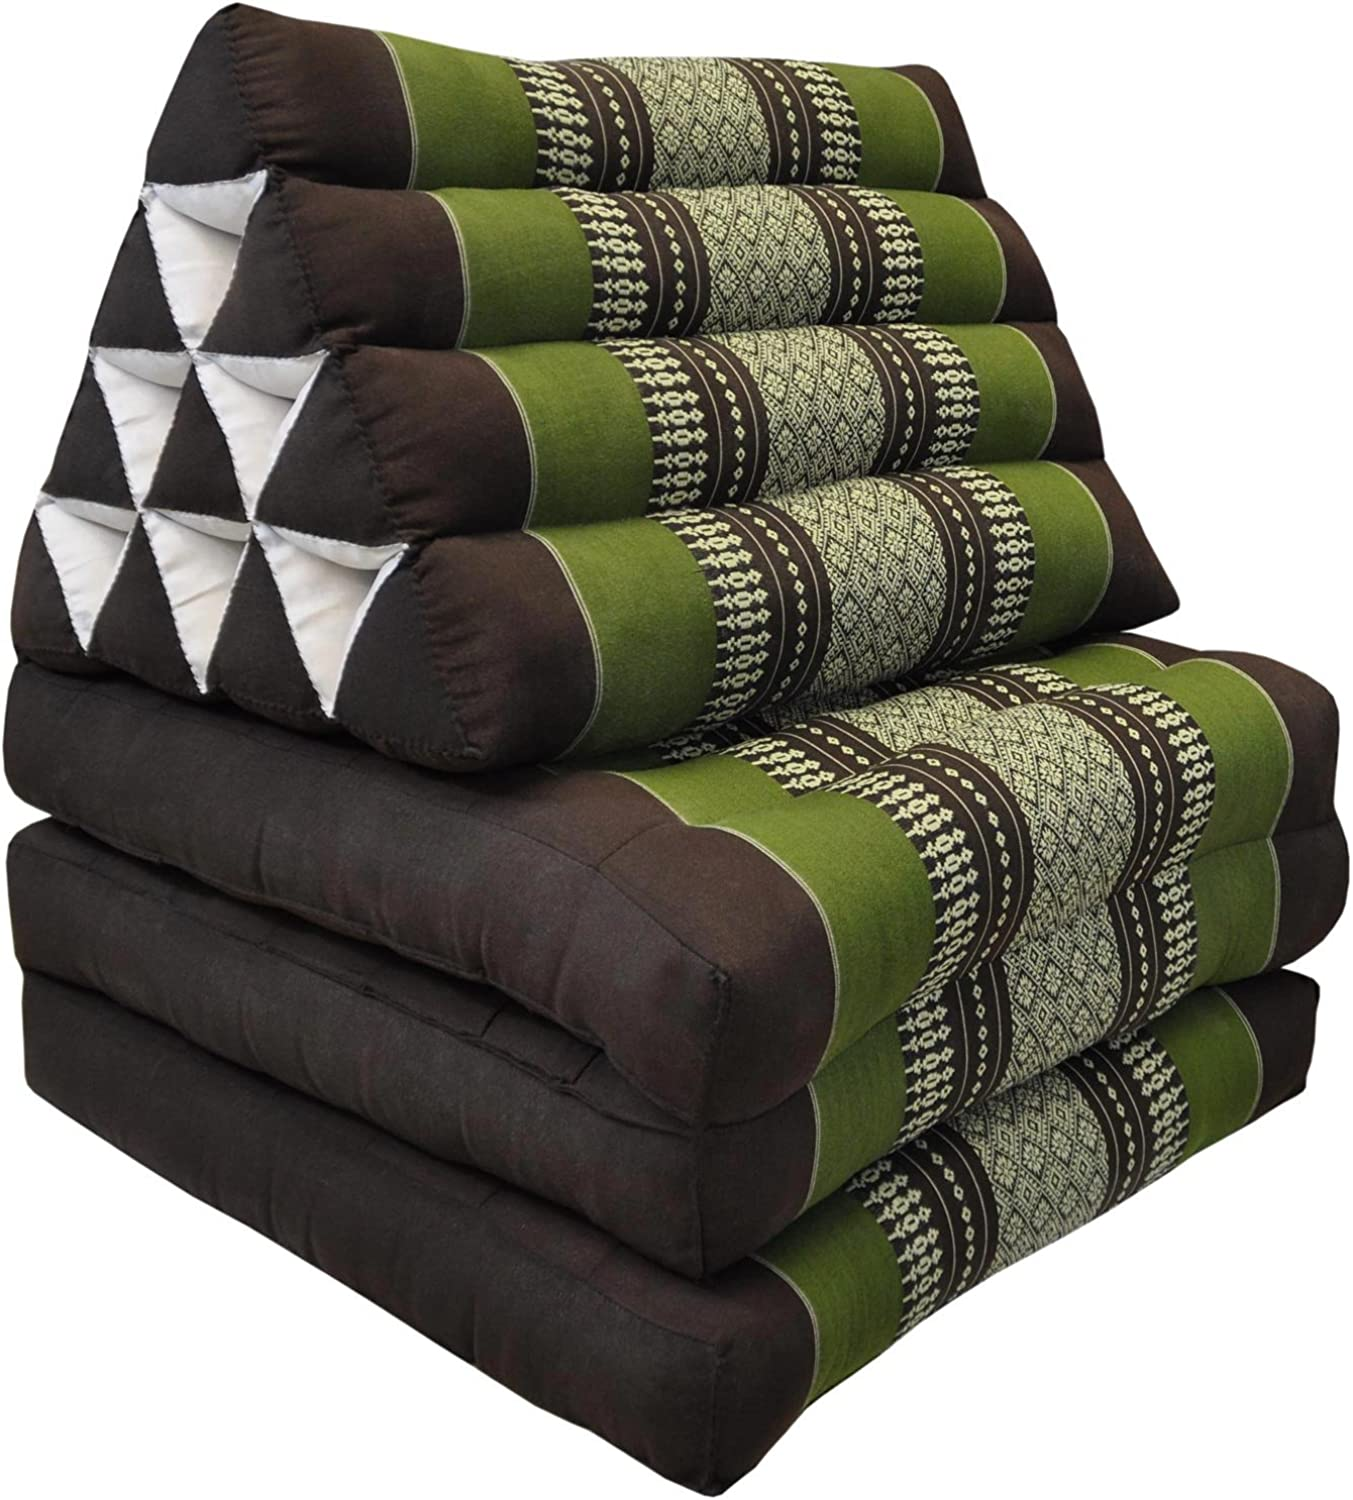 Tungyashop@thai Traditional Cushion 67x21x3 Inches Kapok Mattress (Green-Brown, 3 Fold)